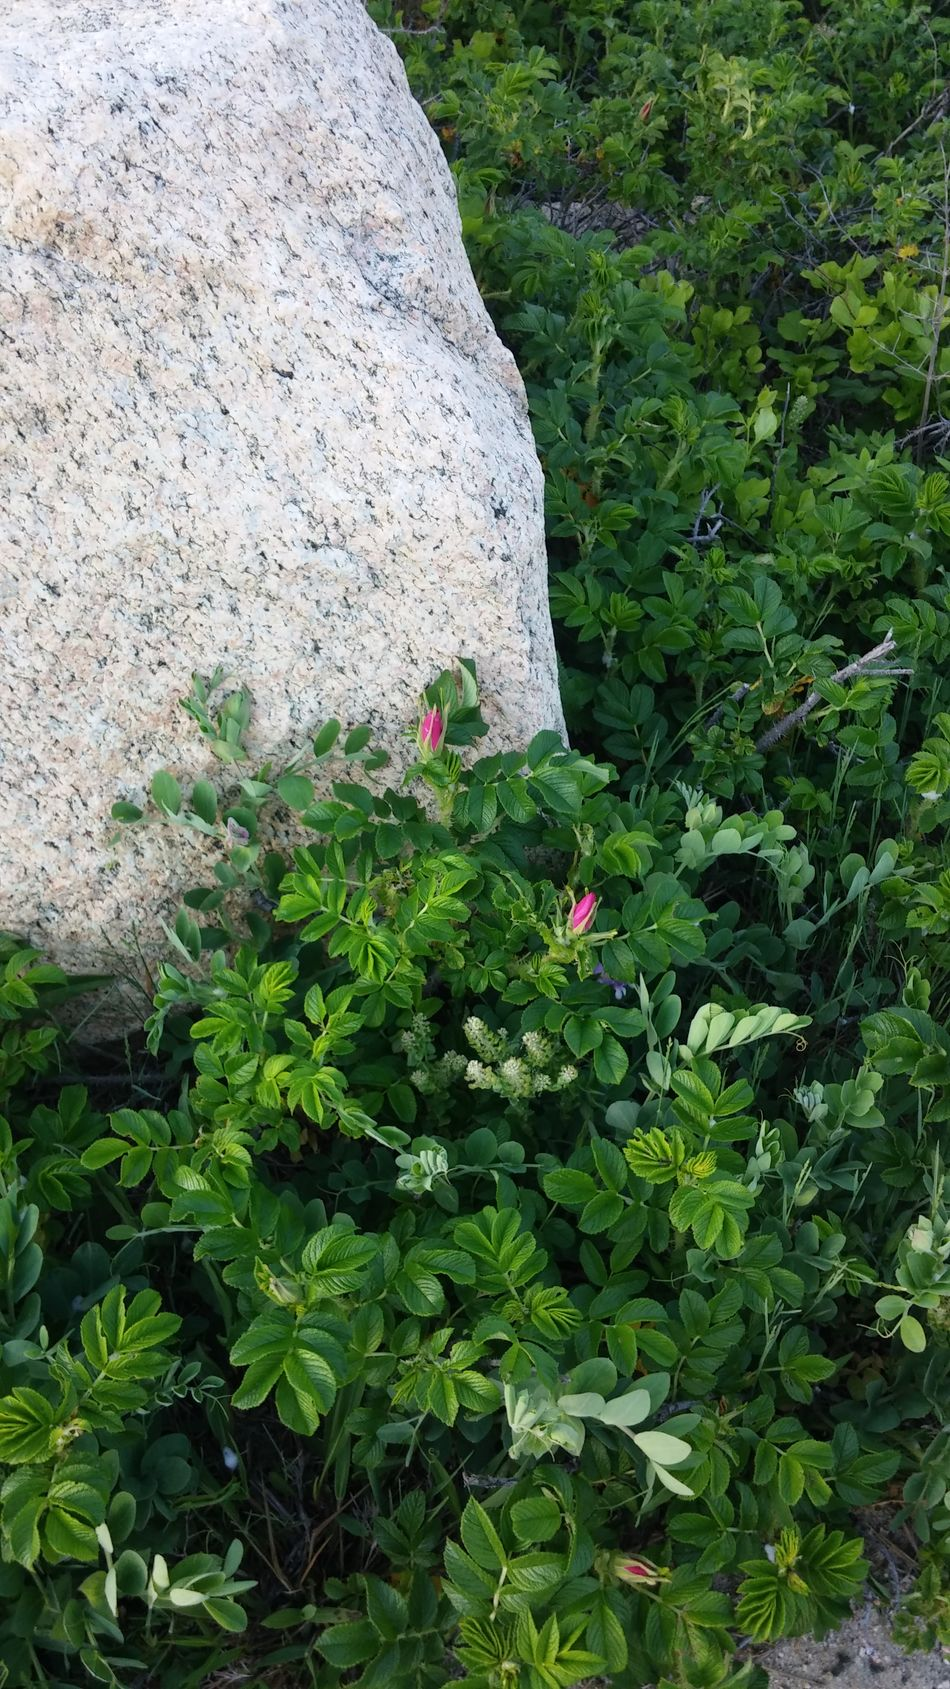 Beach Rose Beauty In Nature Close-up Day Flower Flower Head Fragility Green Color Growth Leaf Nature No People Outdoors Pink Flower Plant Rock Small Flowers Small Pink Flower